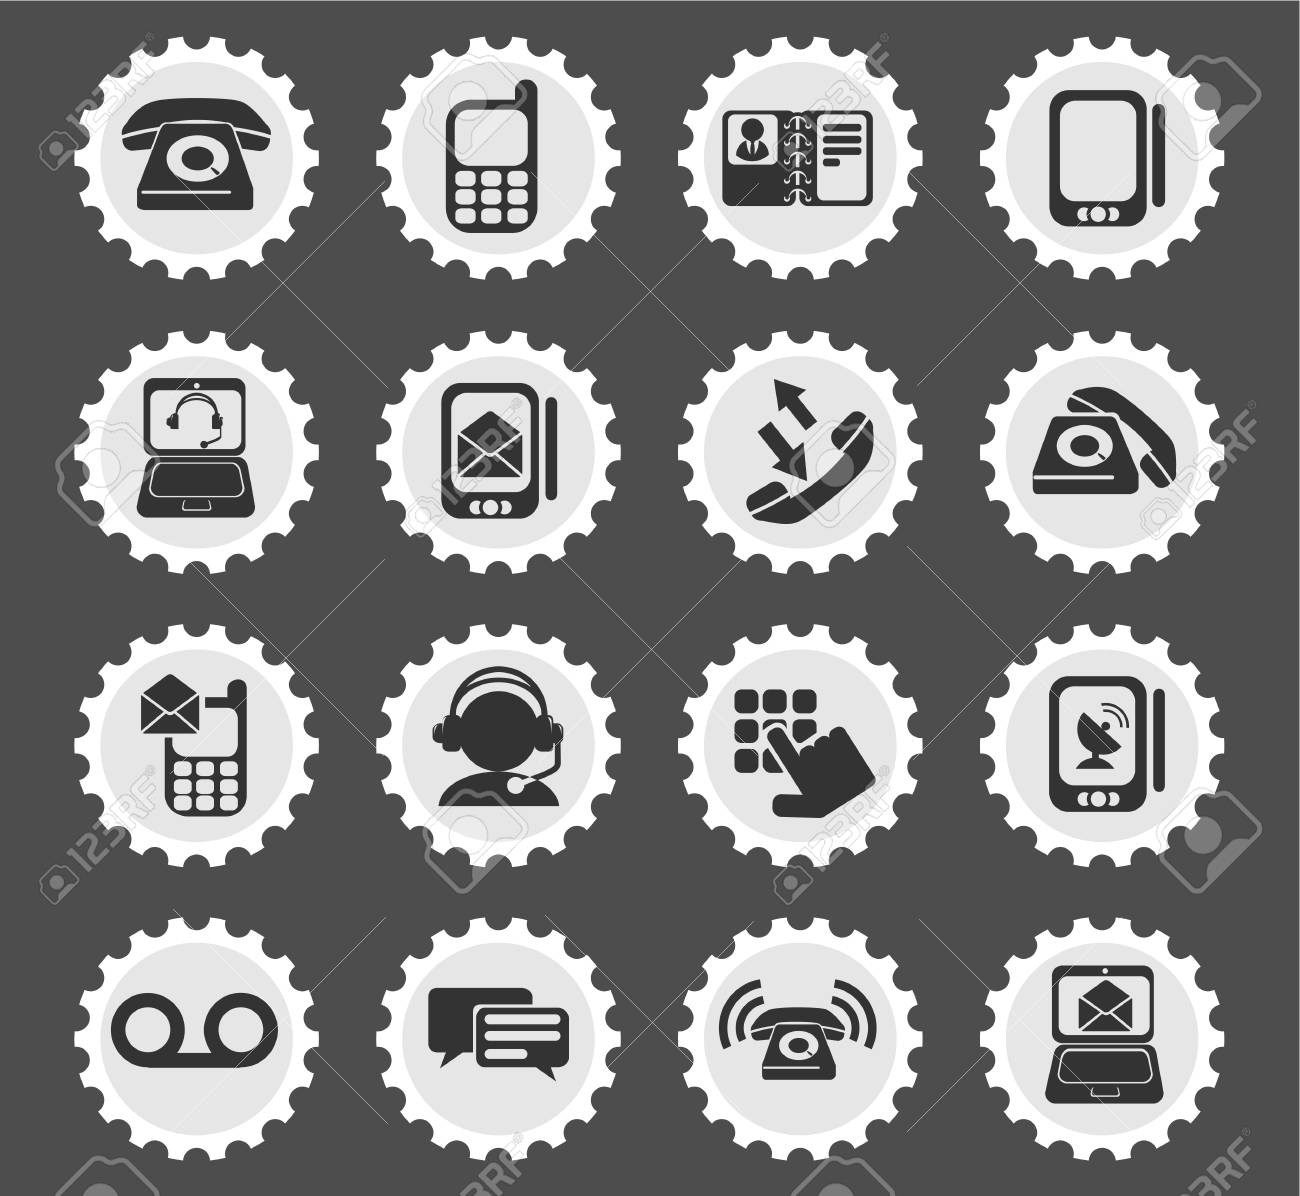 Telephone Simply Symbols For Web And User Interface Royalty Free